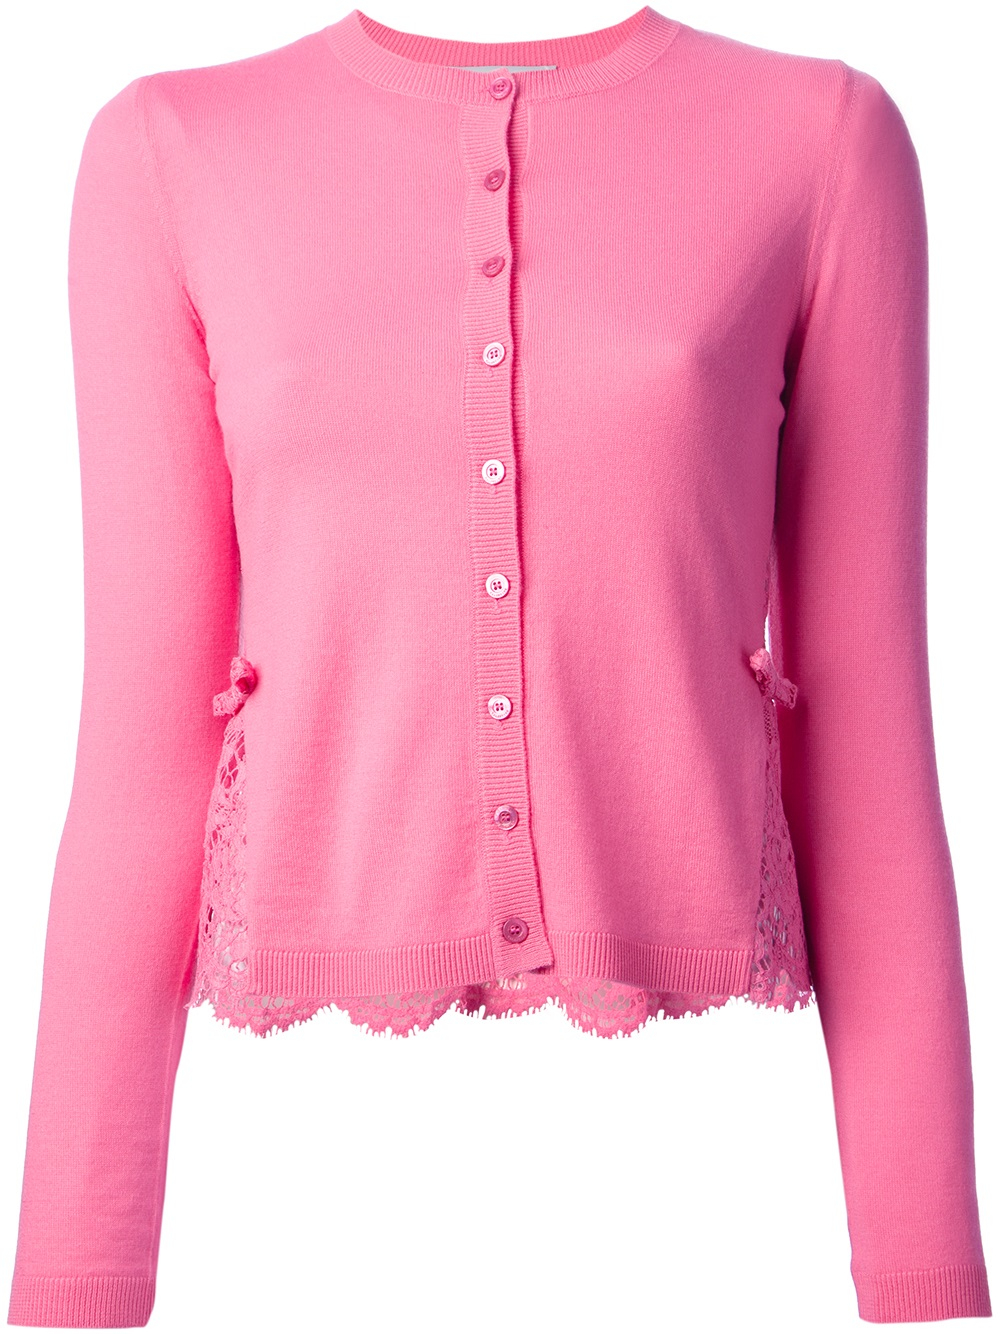 Valentino Lace Panel Cardigan in Pink | Lyst